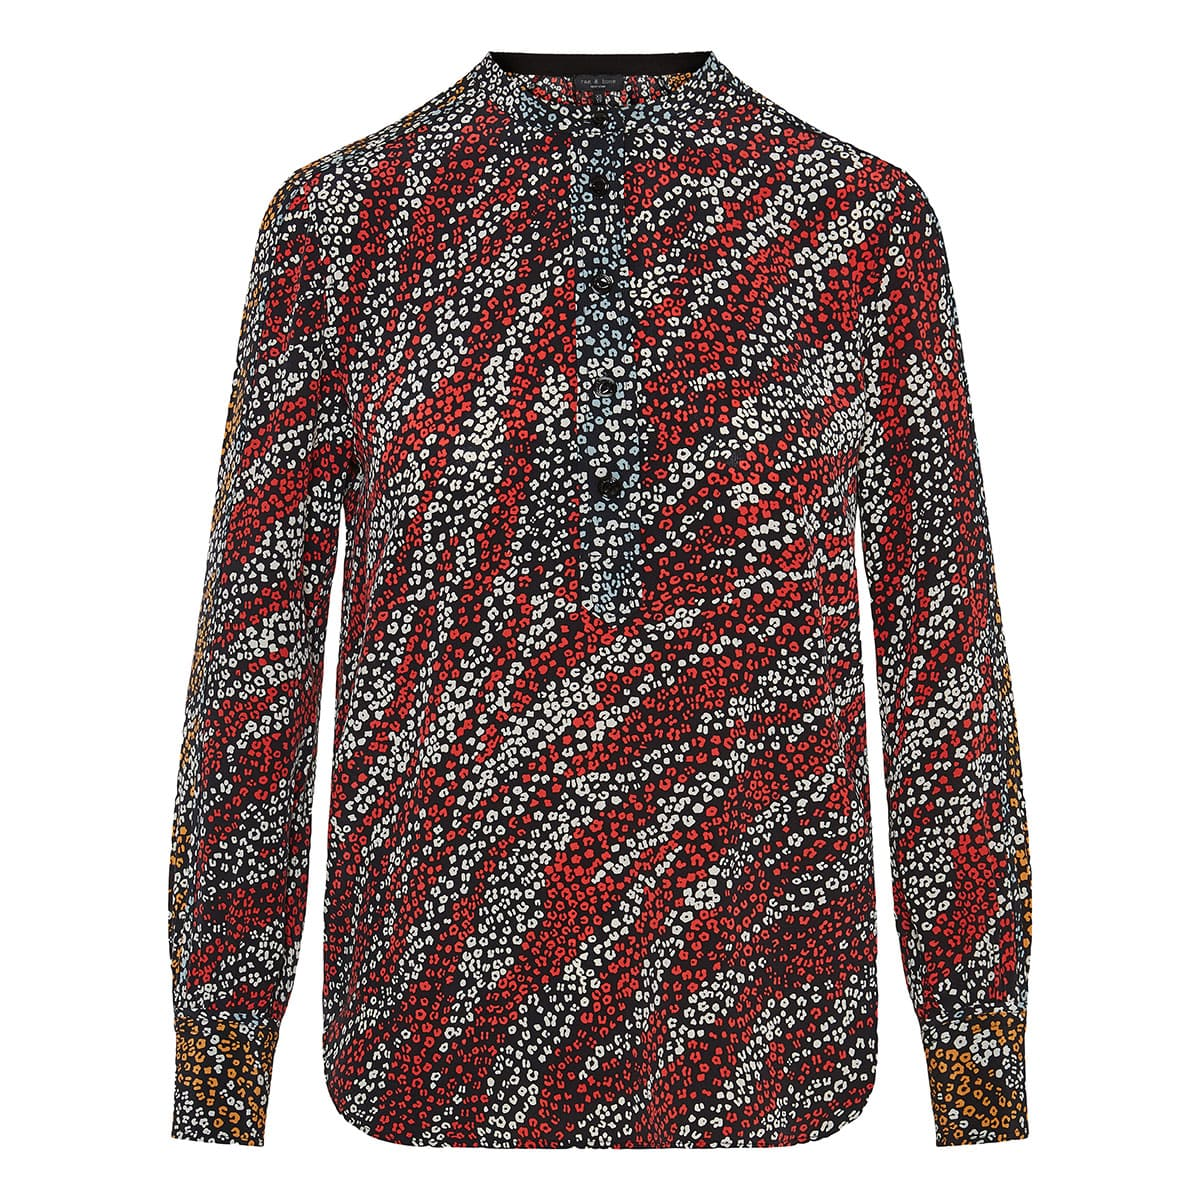 Colette printed silk blouse